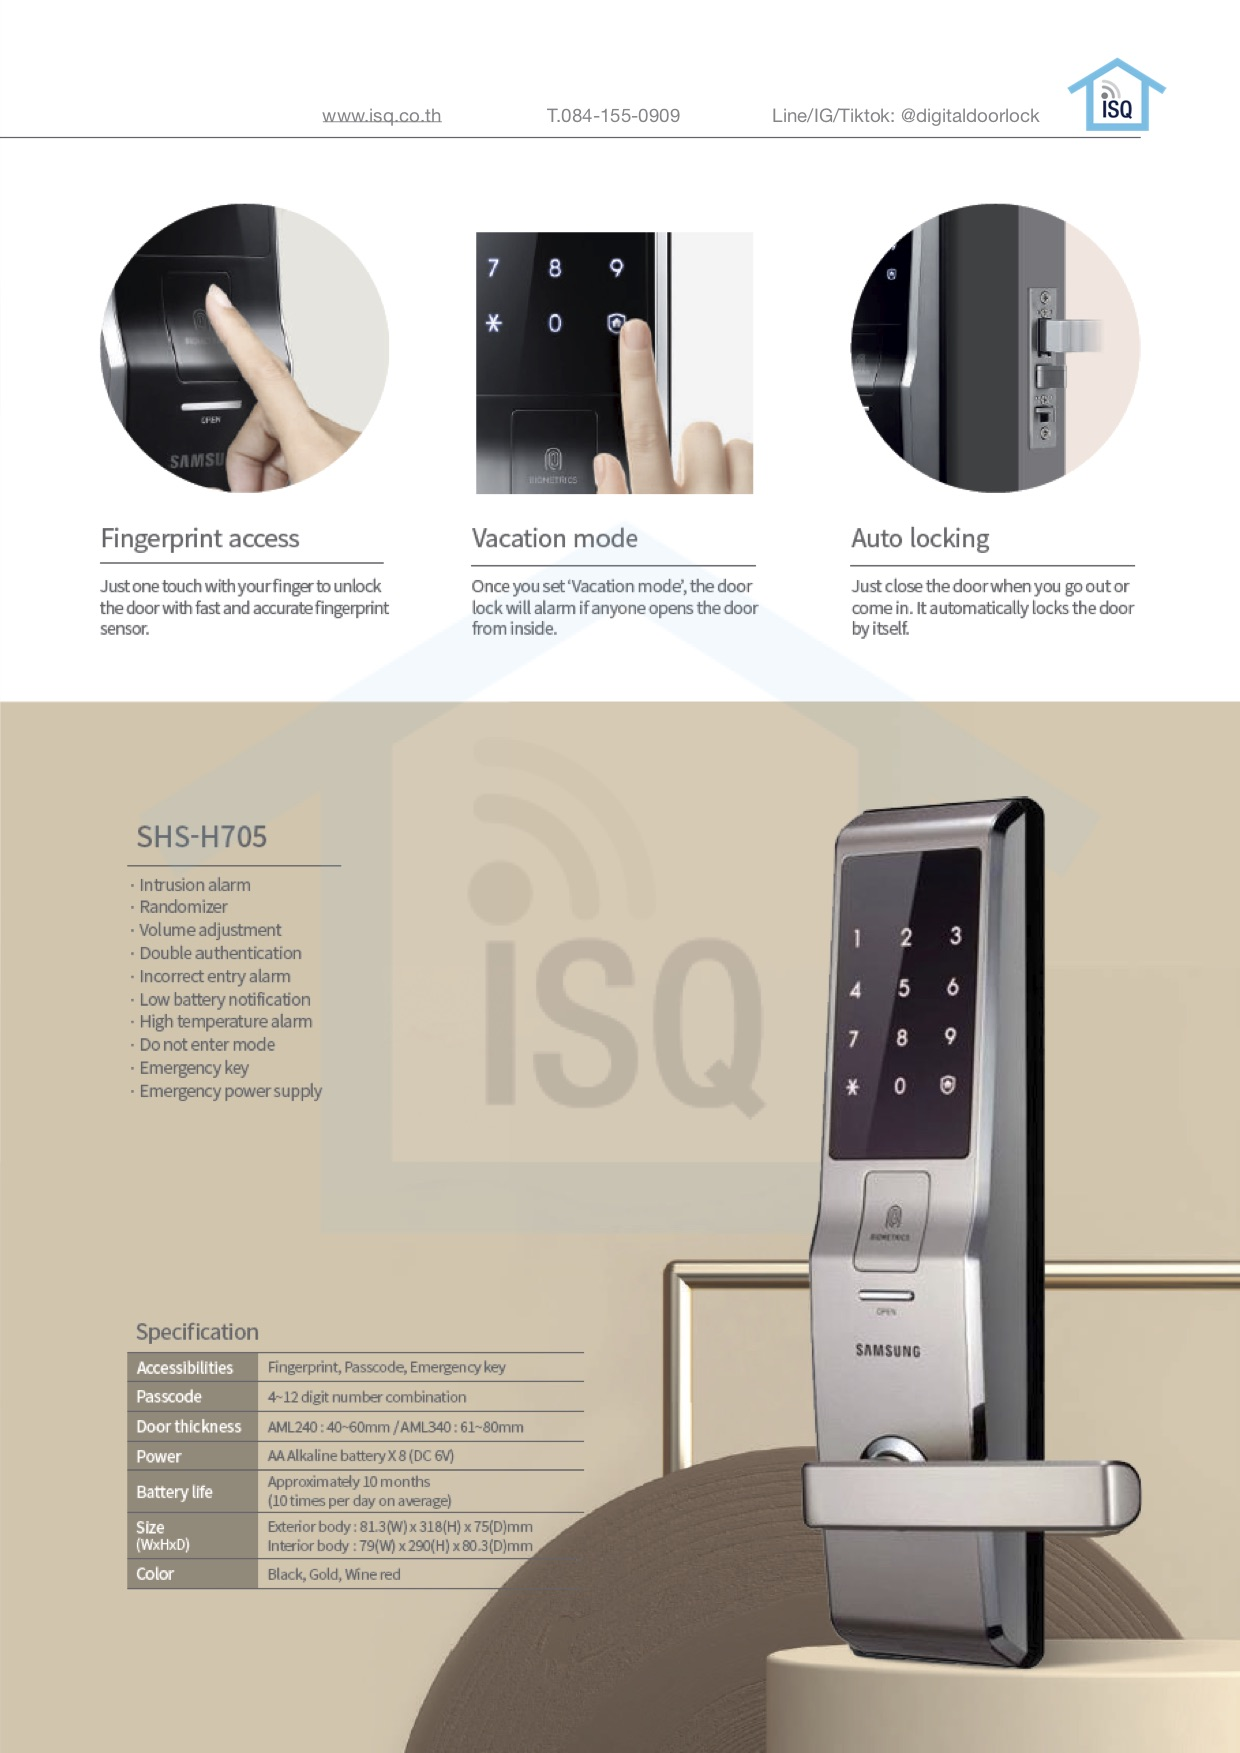 Samsung smart digital door lock SHS-H705 Pink Gold